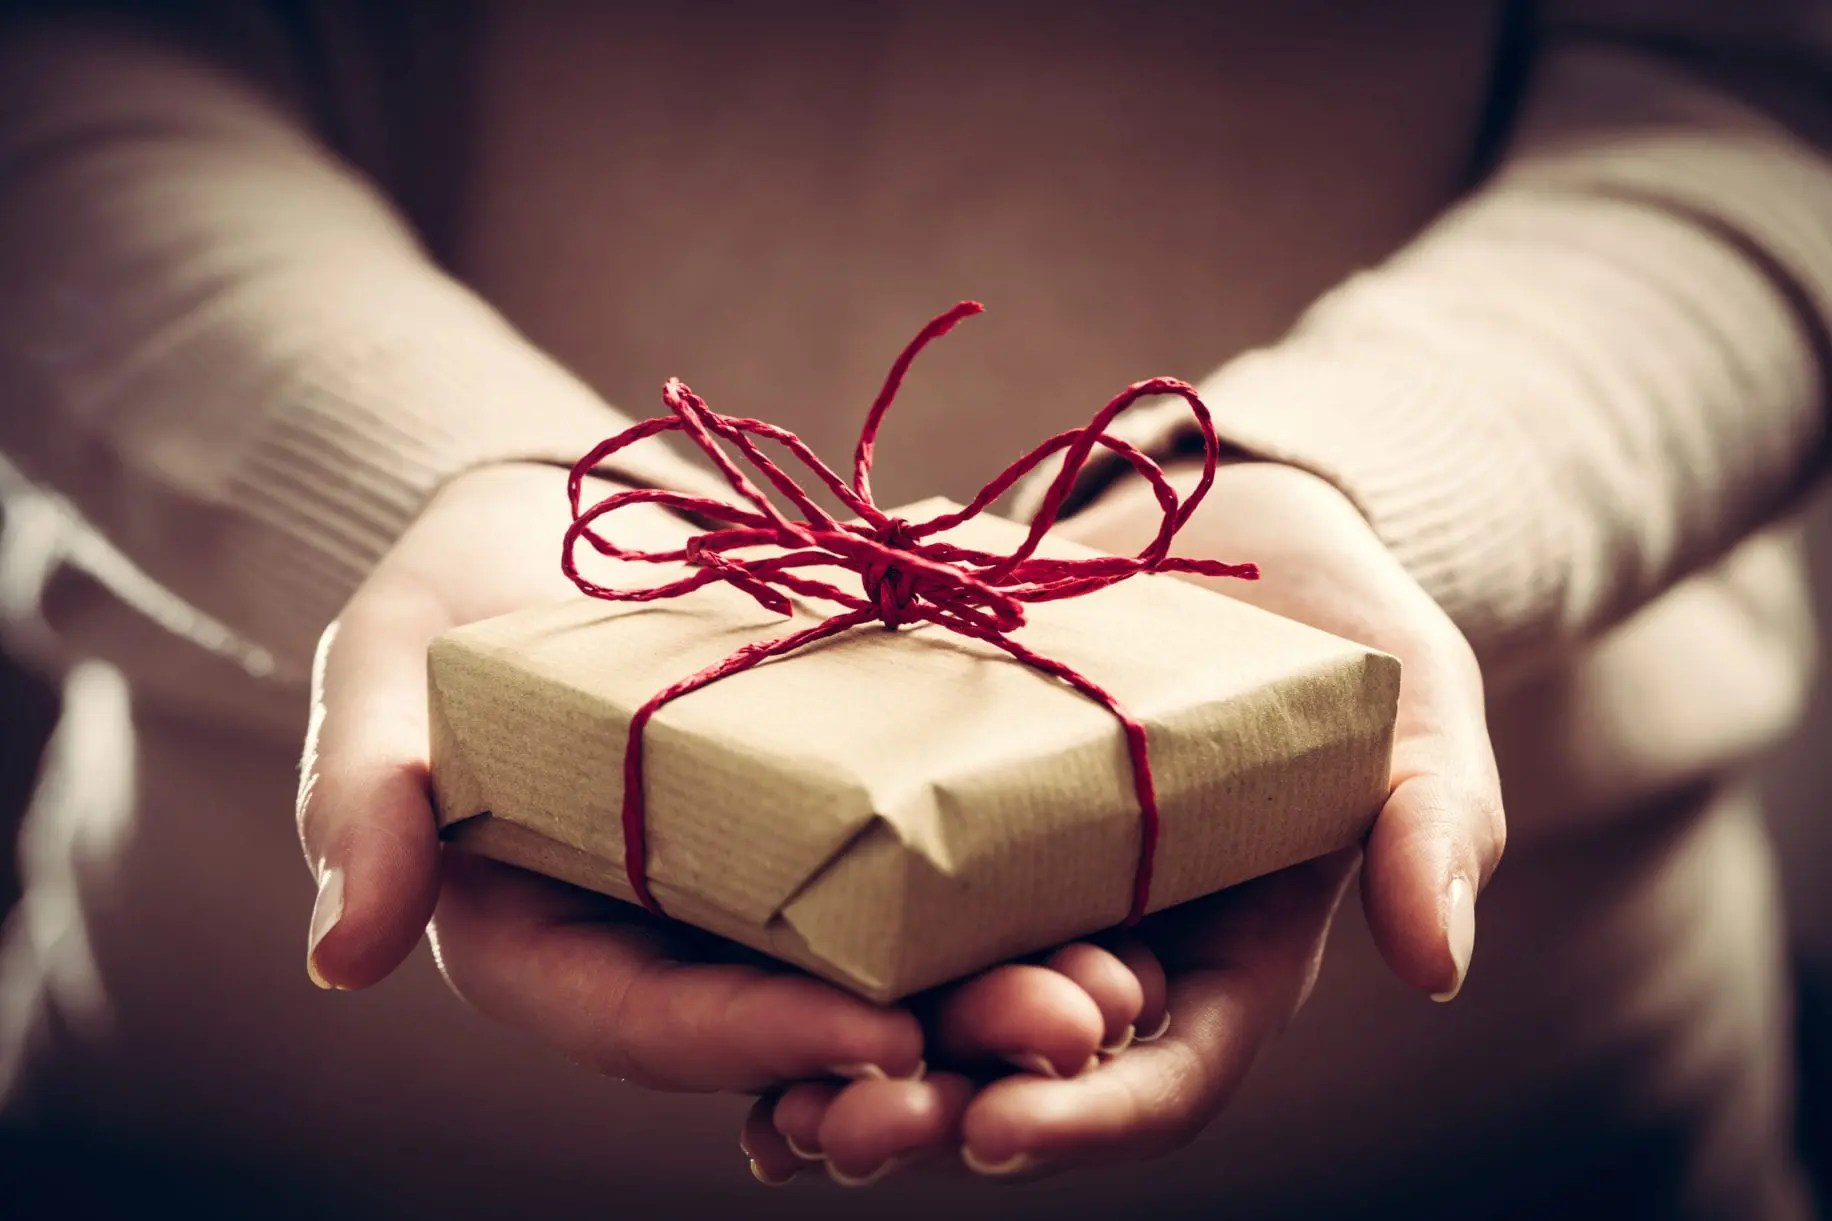 The Joy of Giving Lasts Longer Than the Joy of Getting